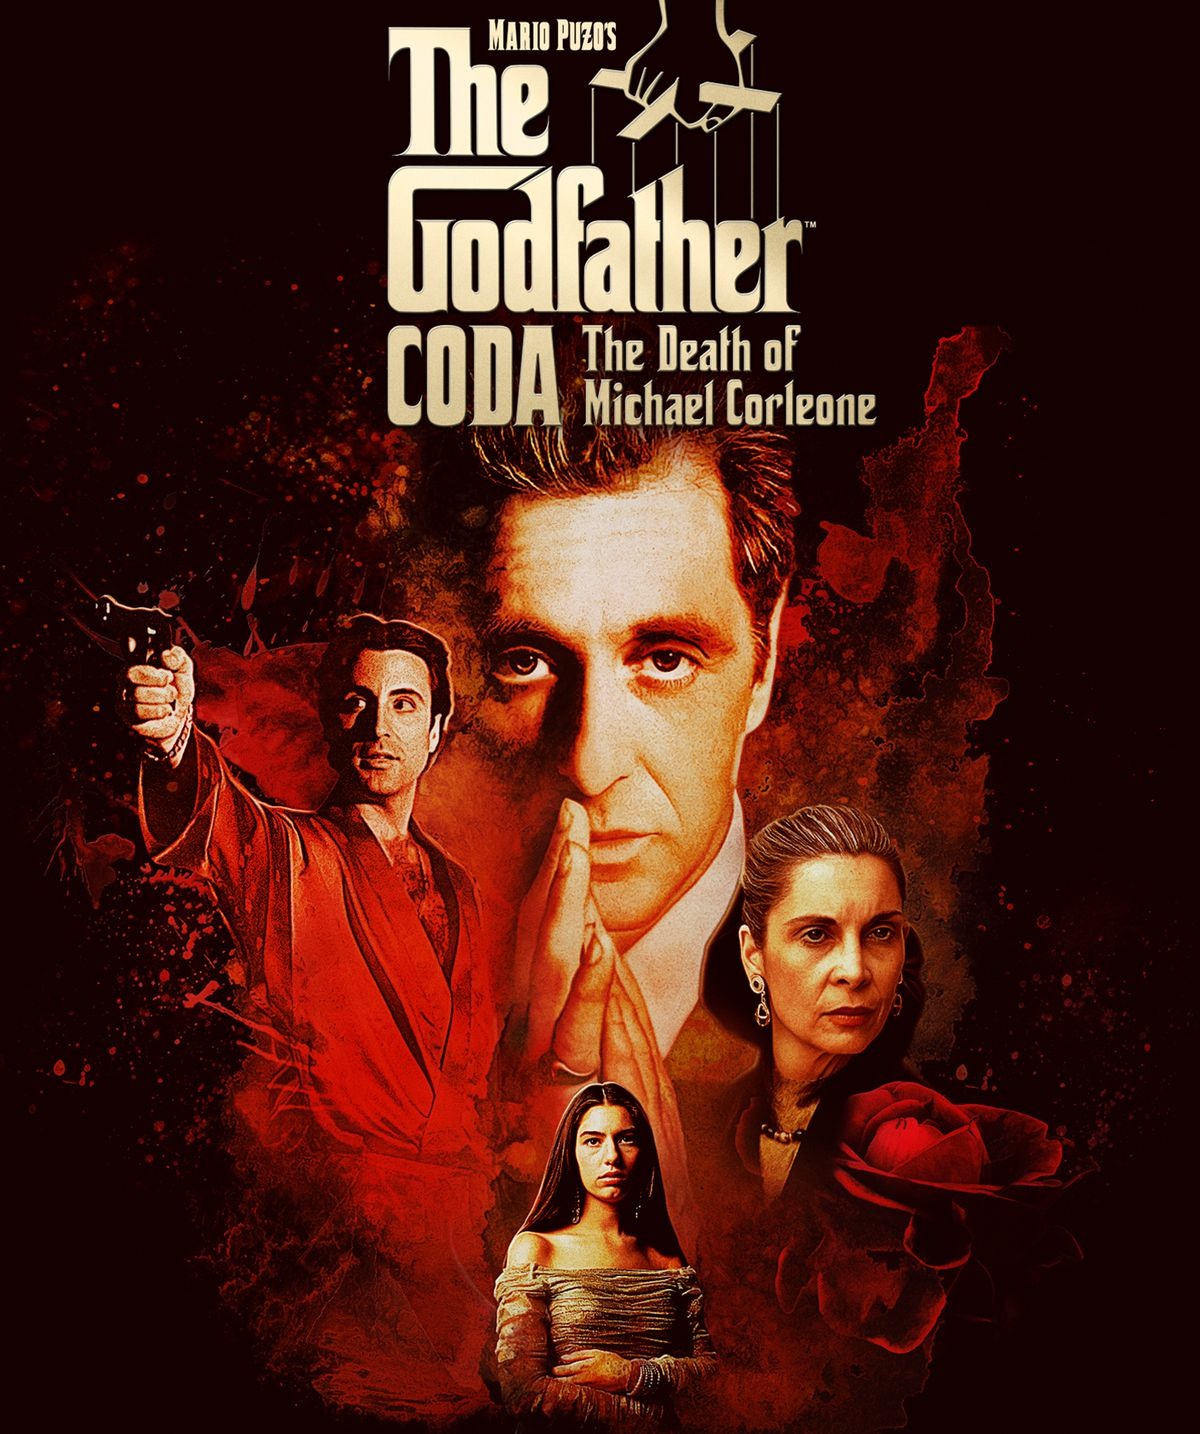 The Godfather 3 re-edit aka The Godfather, Coda: The Death of Michael Corleone poster